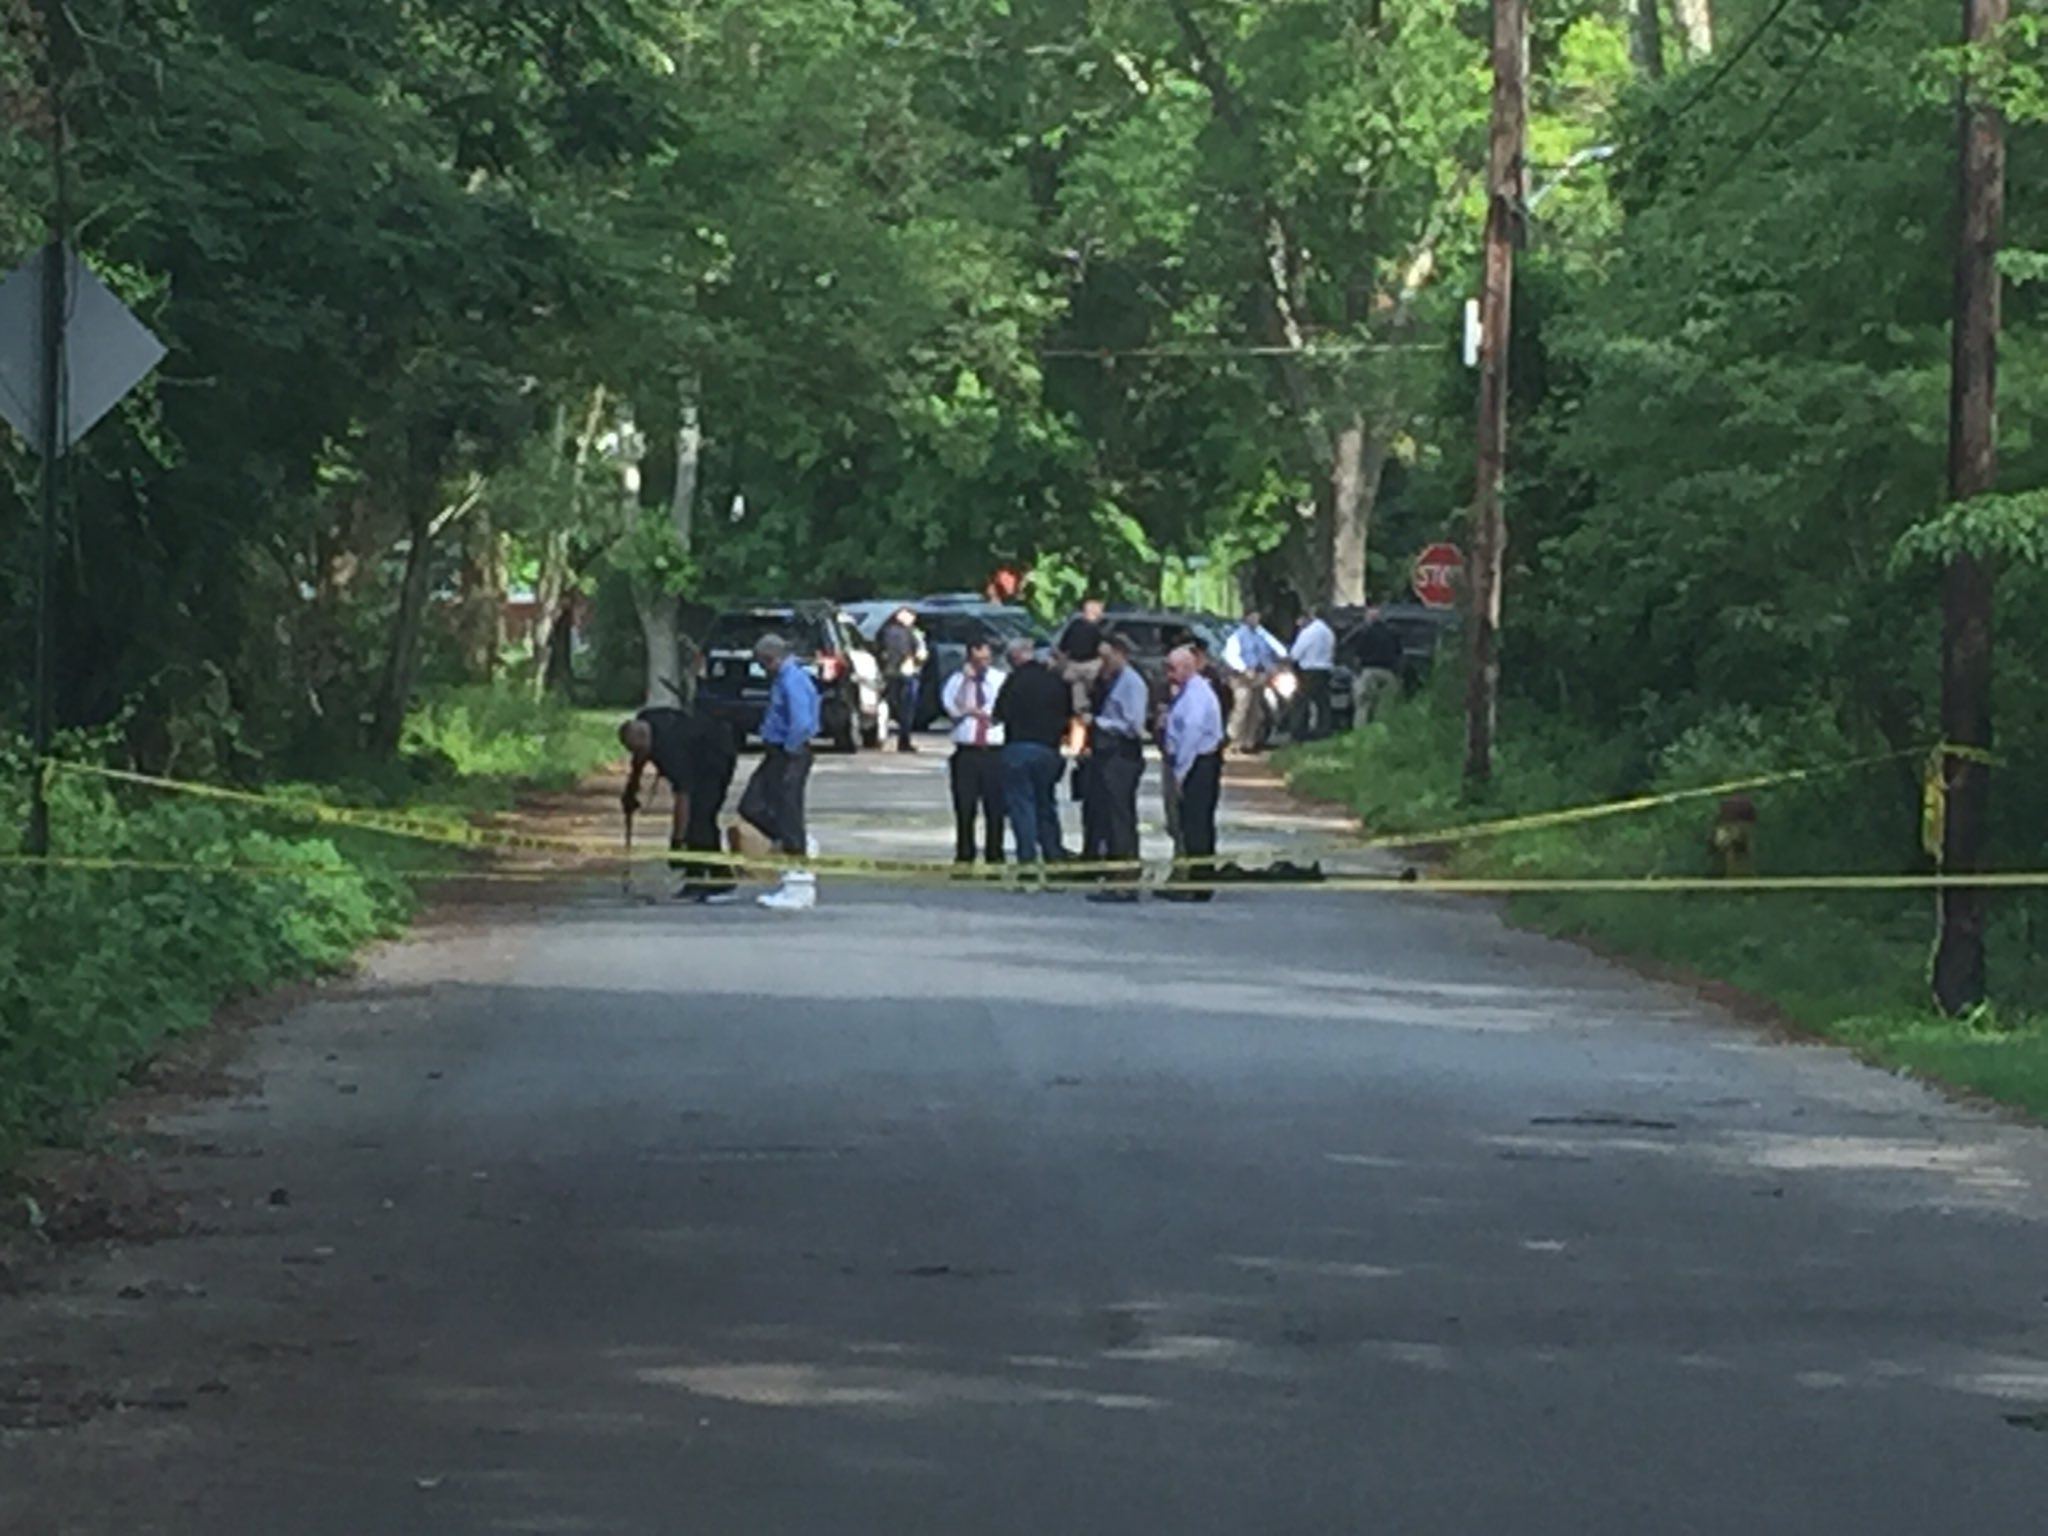 Burning Dead Body Discovered on Side of Attleboro, Mass. Road